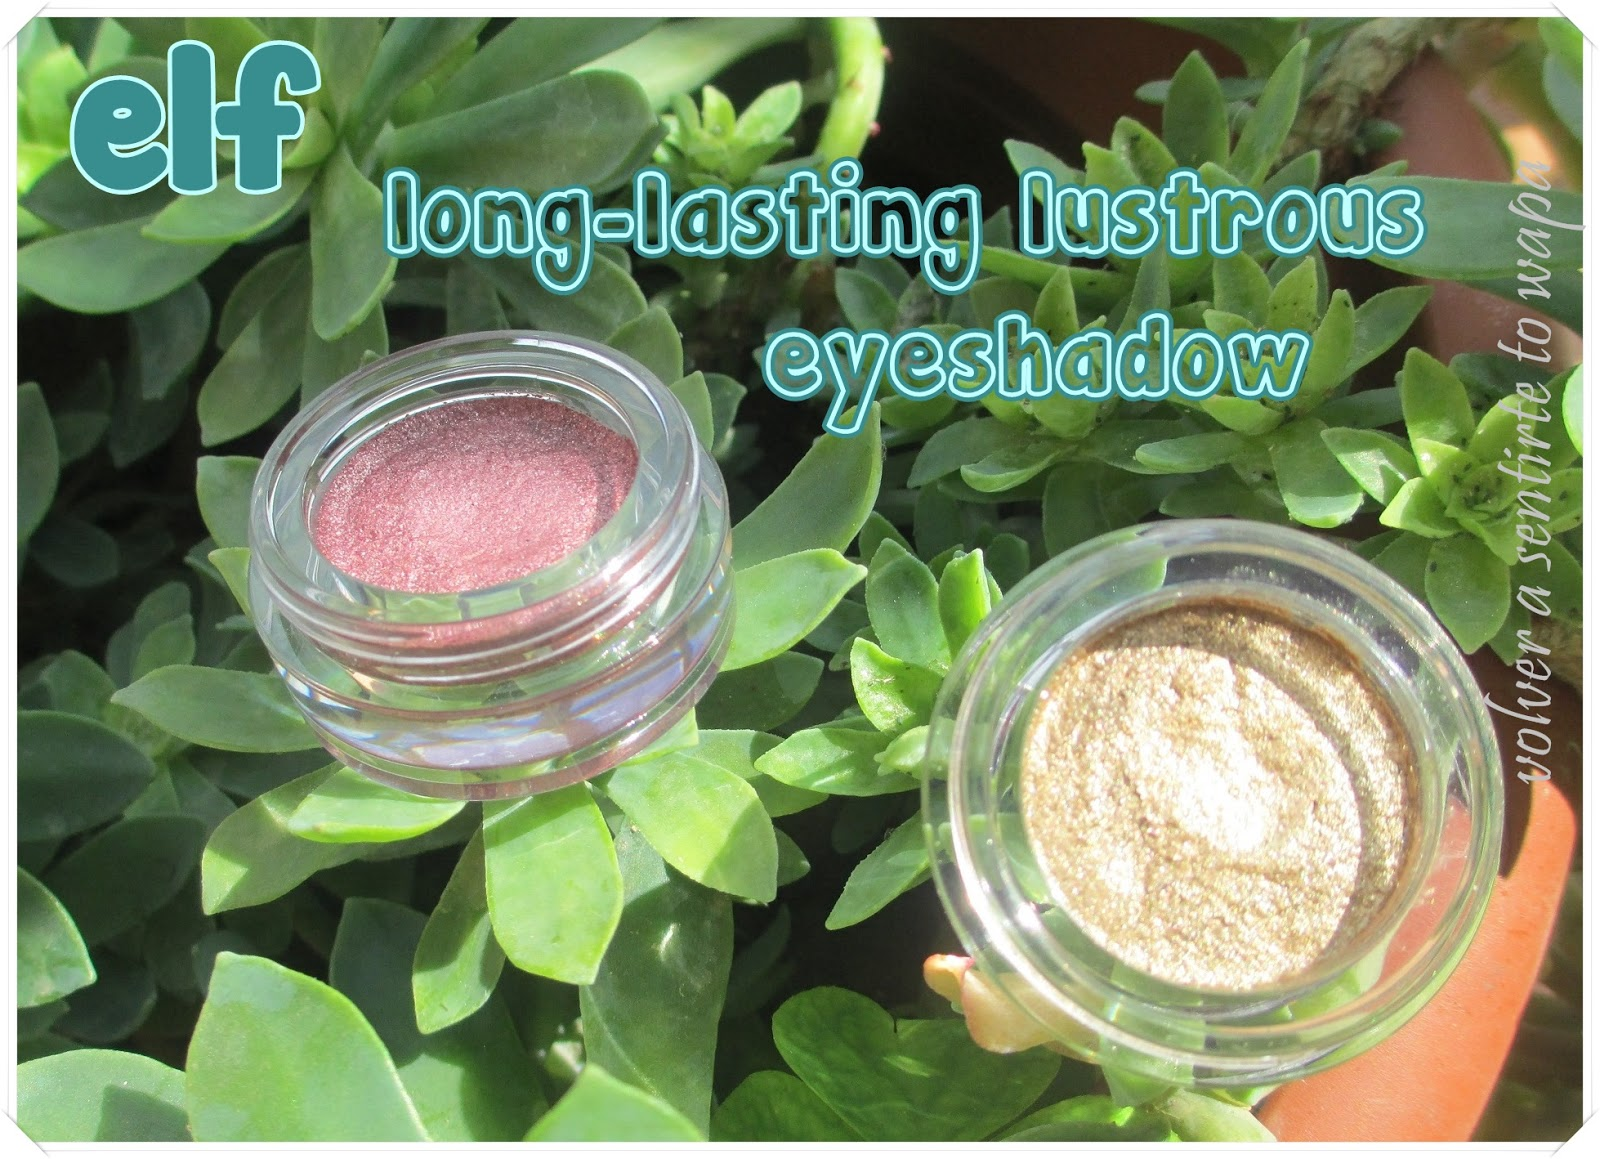 Long-lasting lustrous eyeshadow de elf